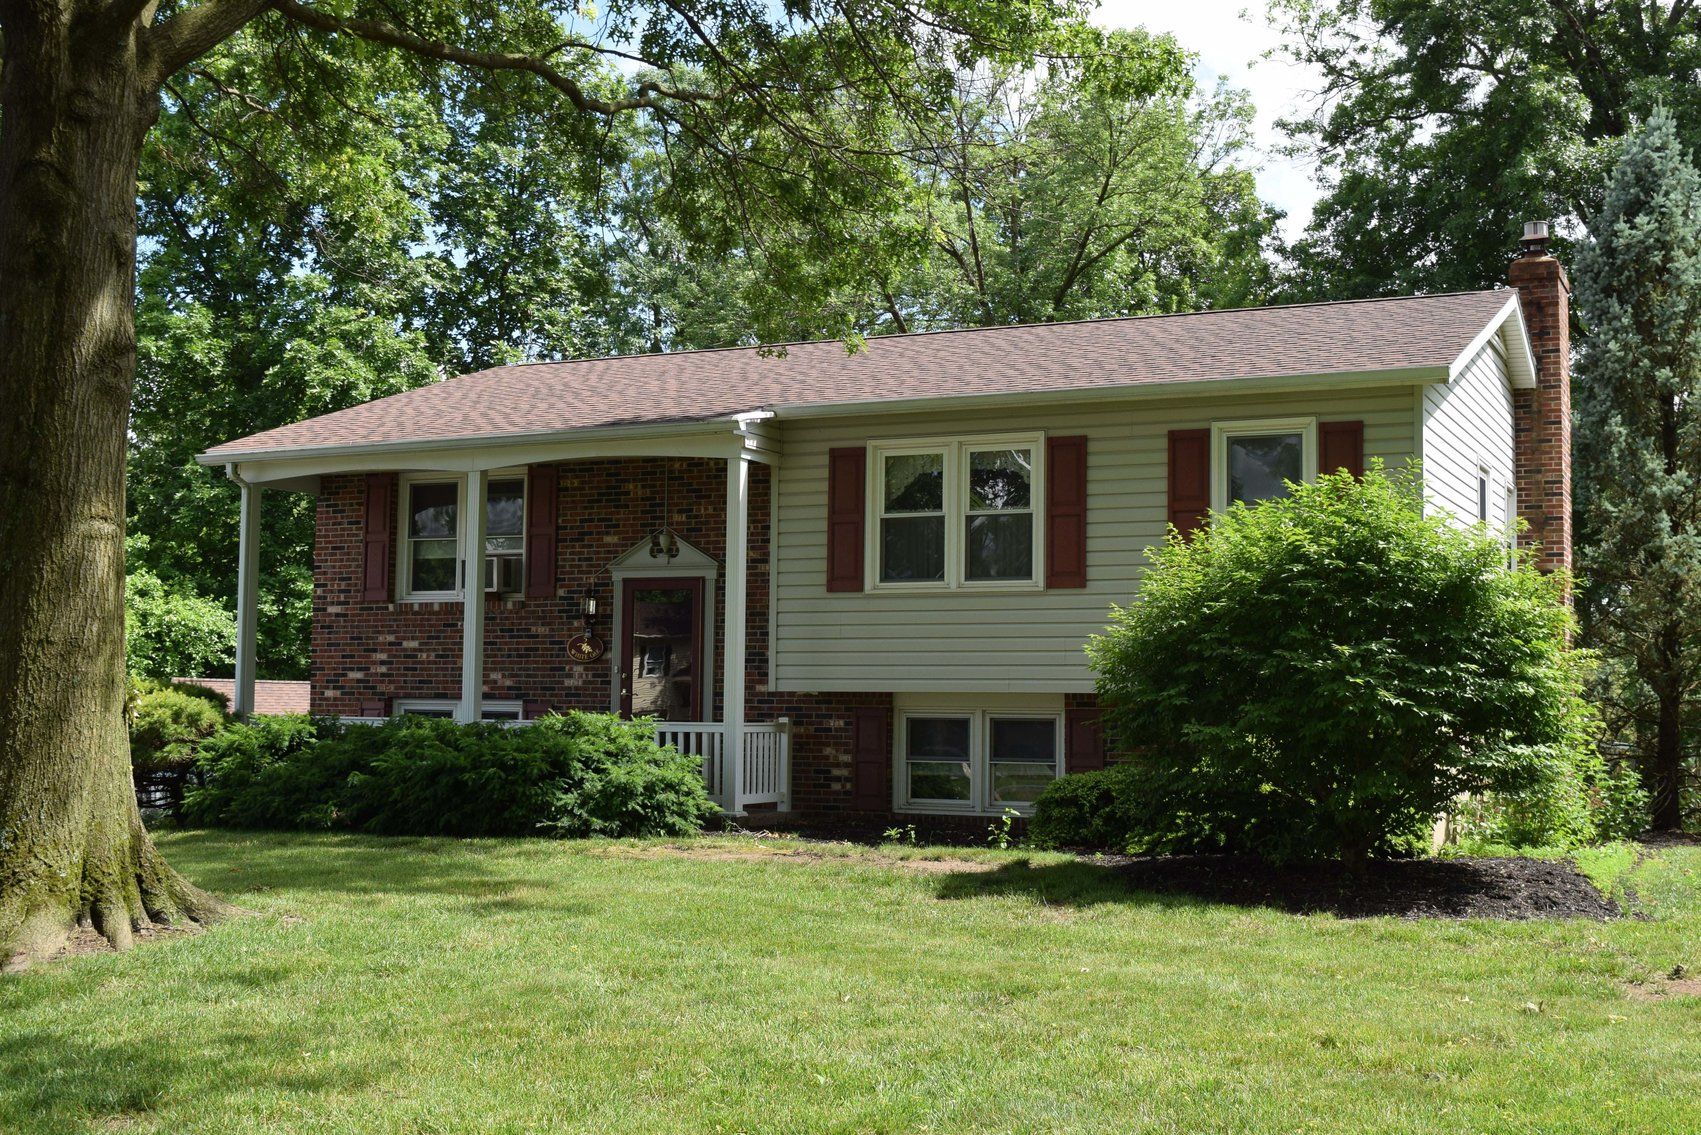 Real Estate Private Showings: By Appointment Only | 5 White Oak Lane, Sellersville, PA 18960 | July 8 and 12, 2020